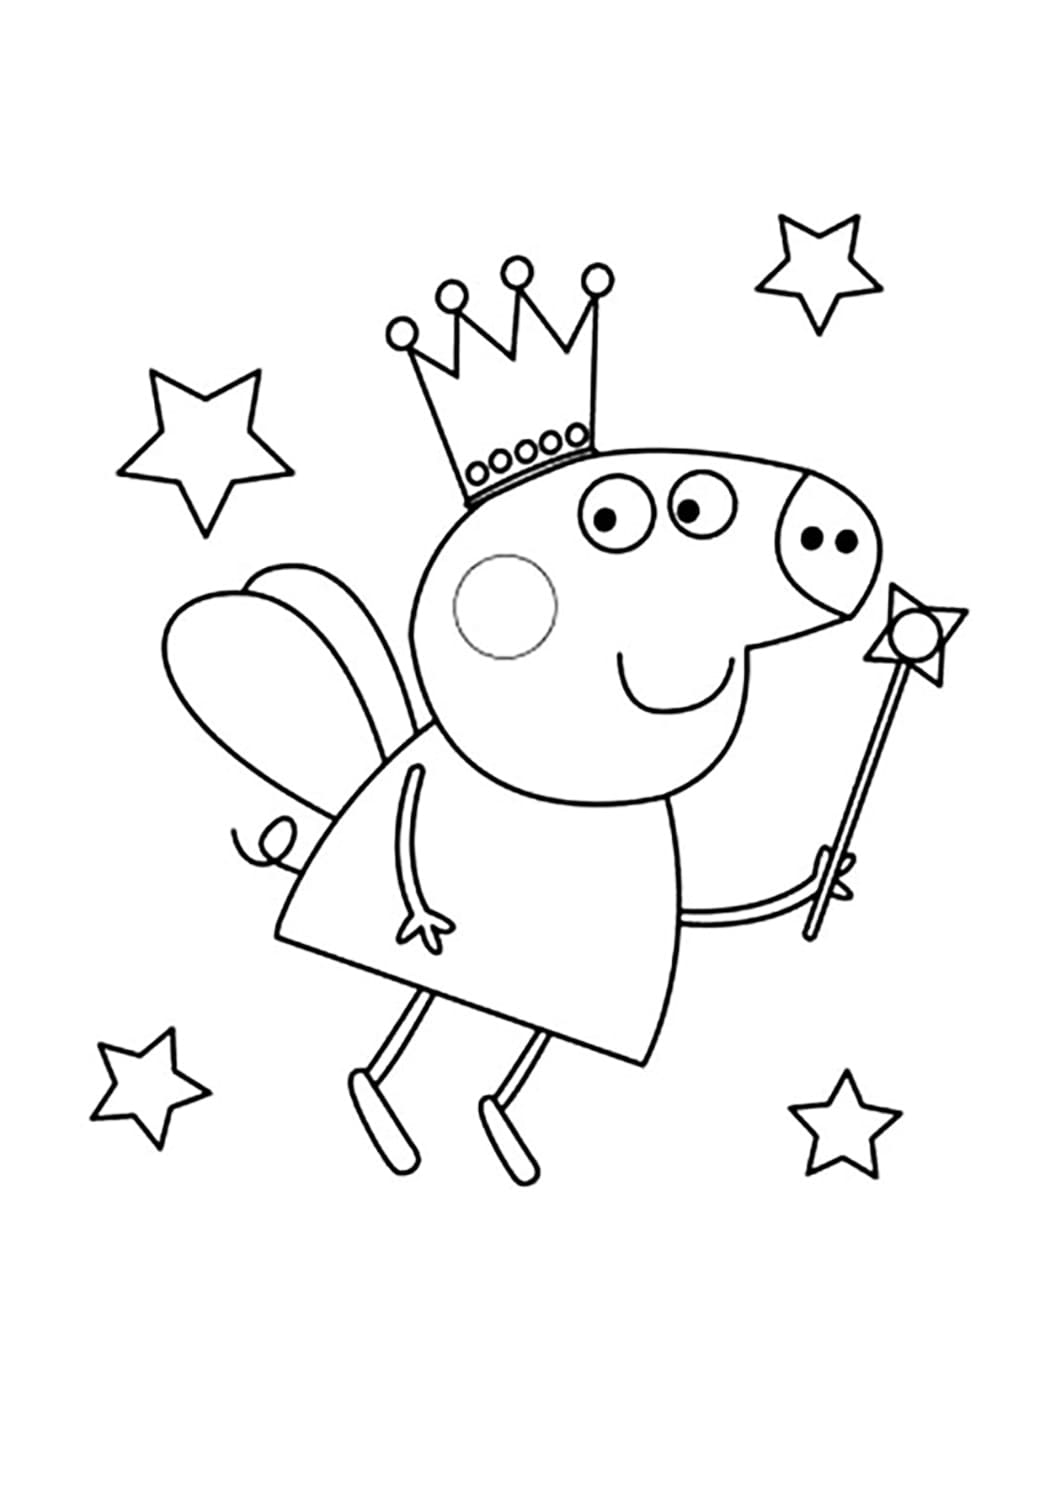 Peppa Pig Coloring Pages Her Family And Friends Print Online